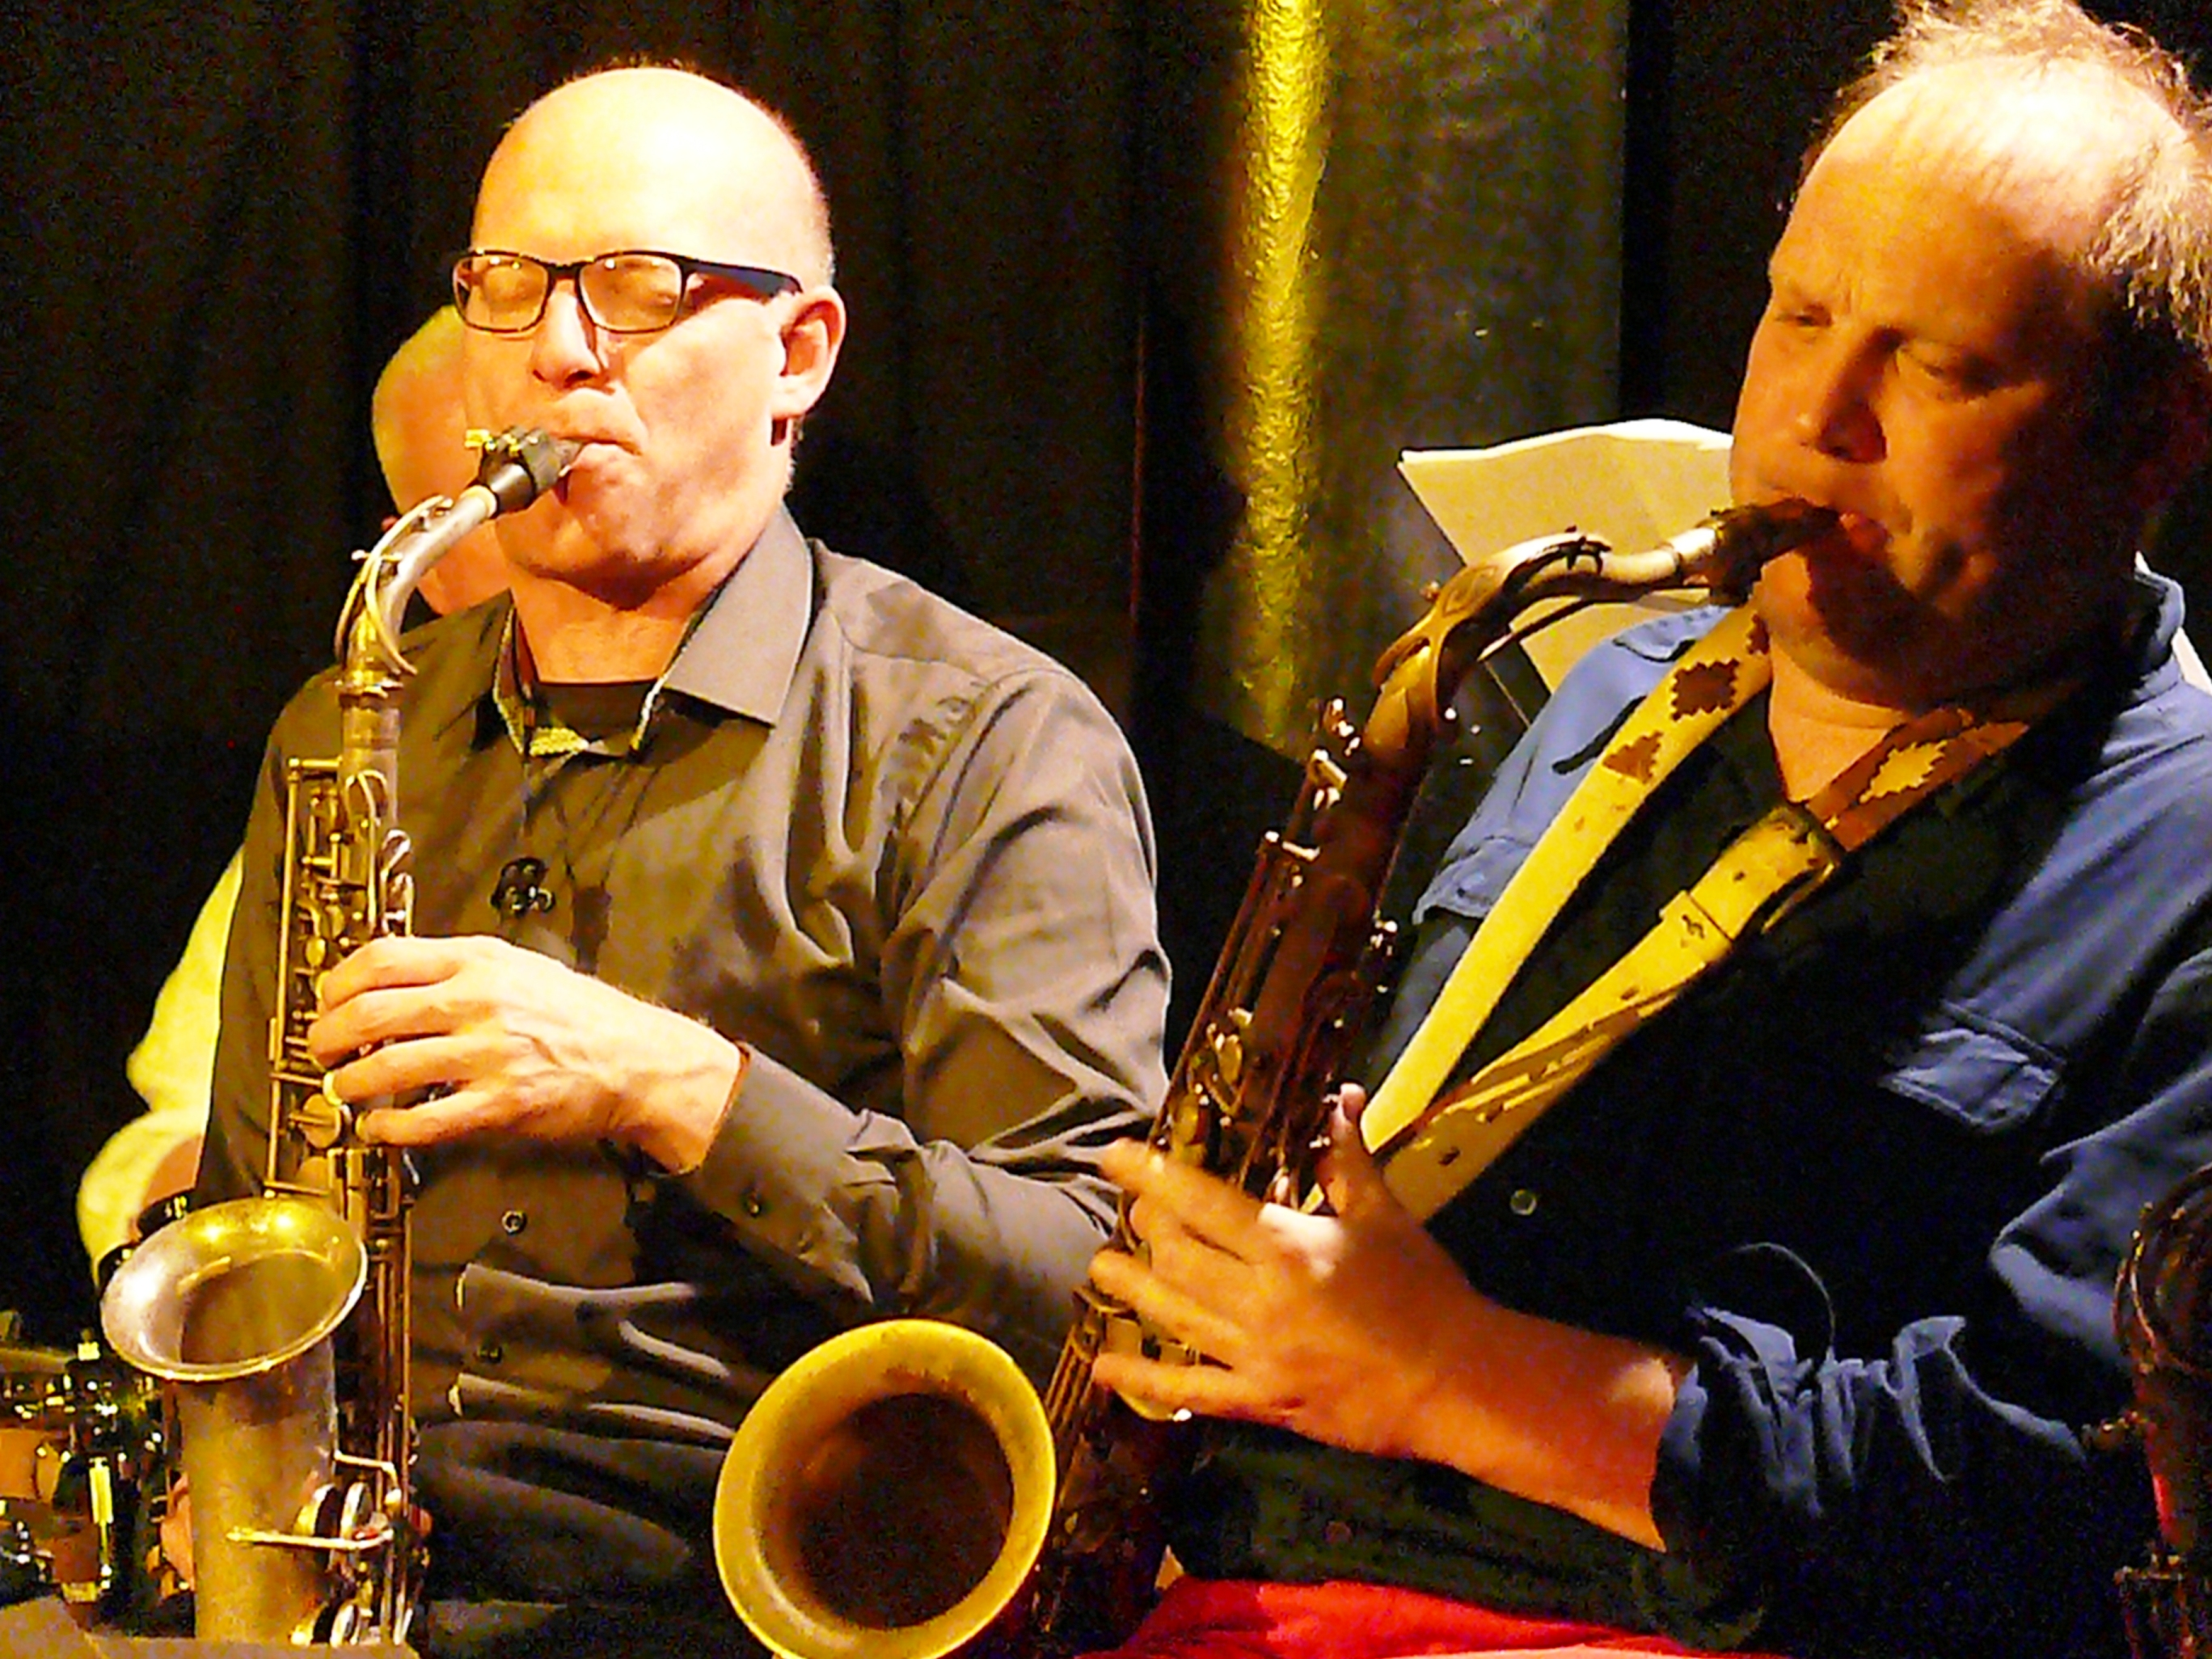 Michael moore and tobias delius at the vortex, london in february 2013